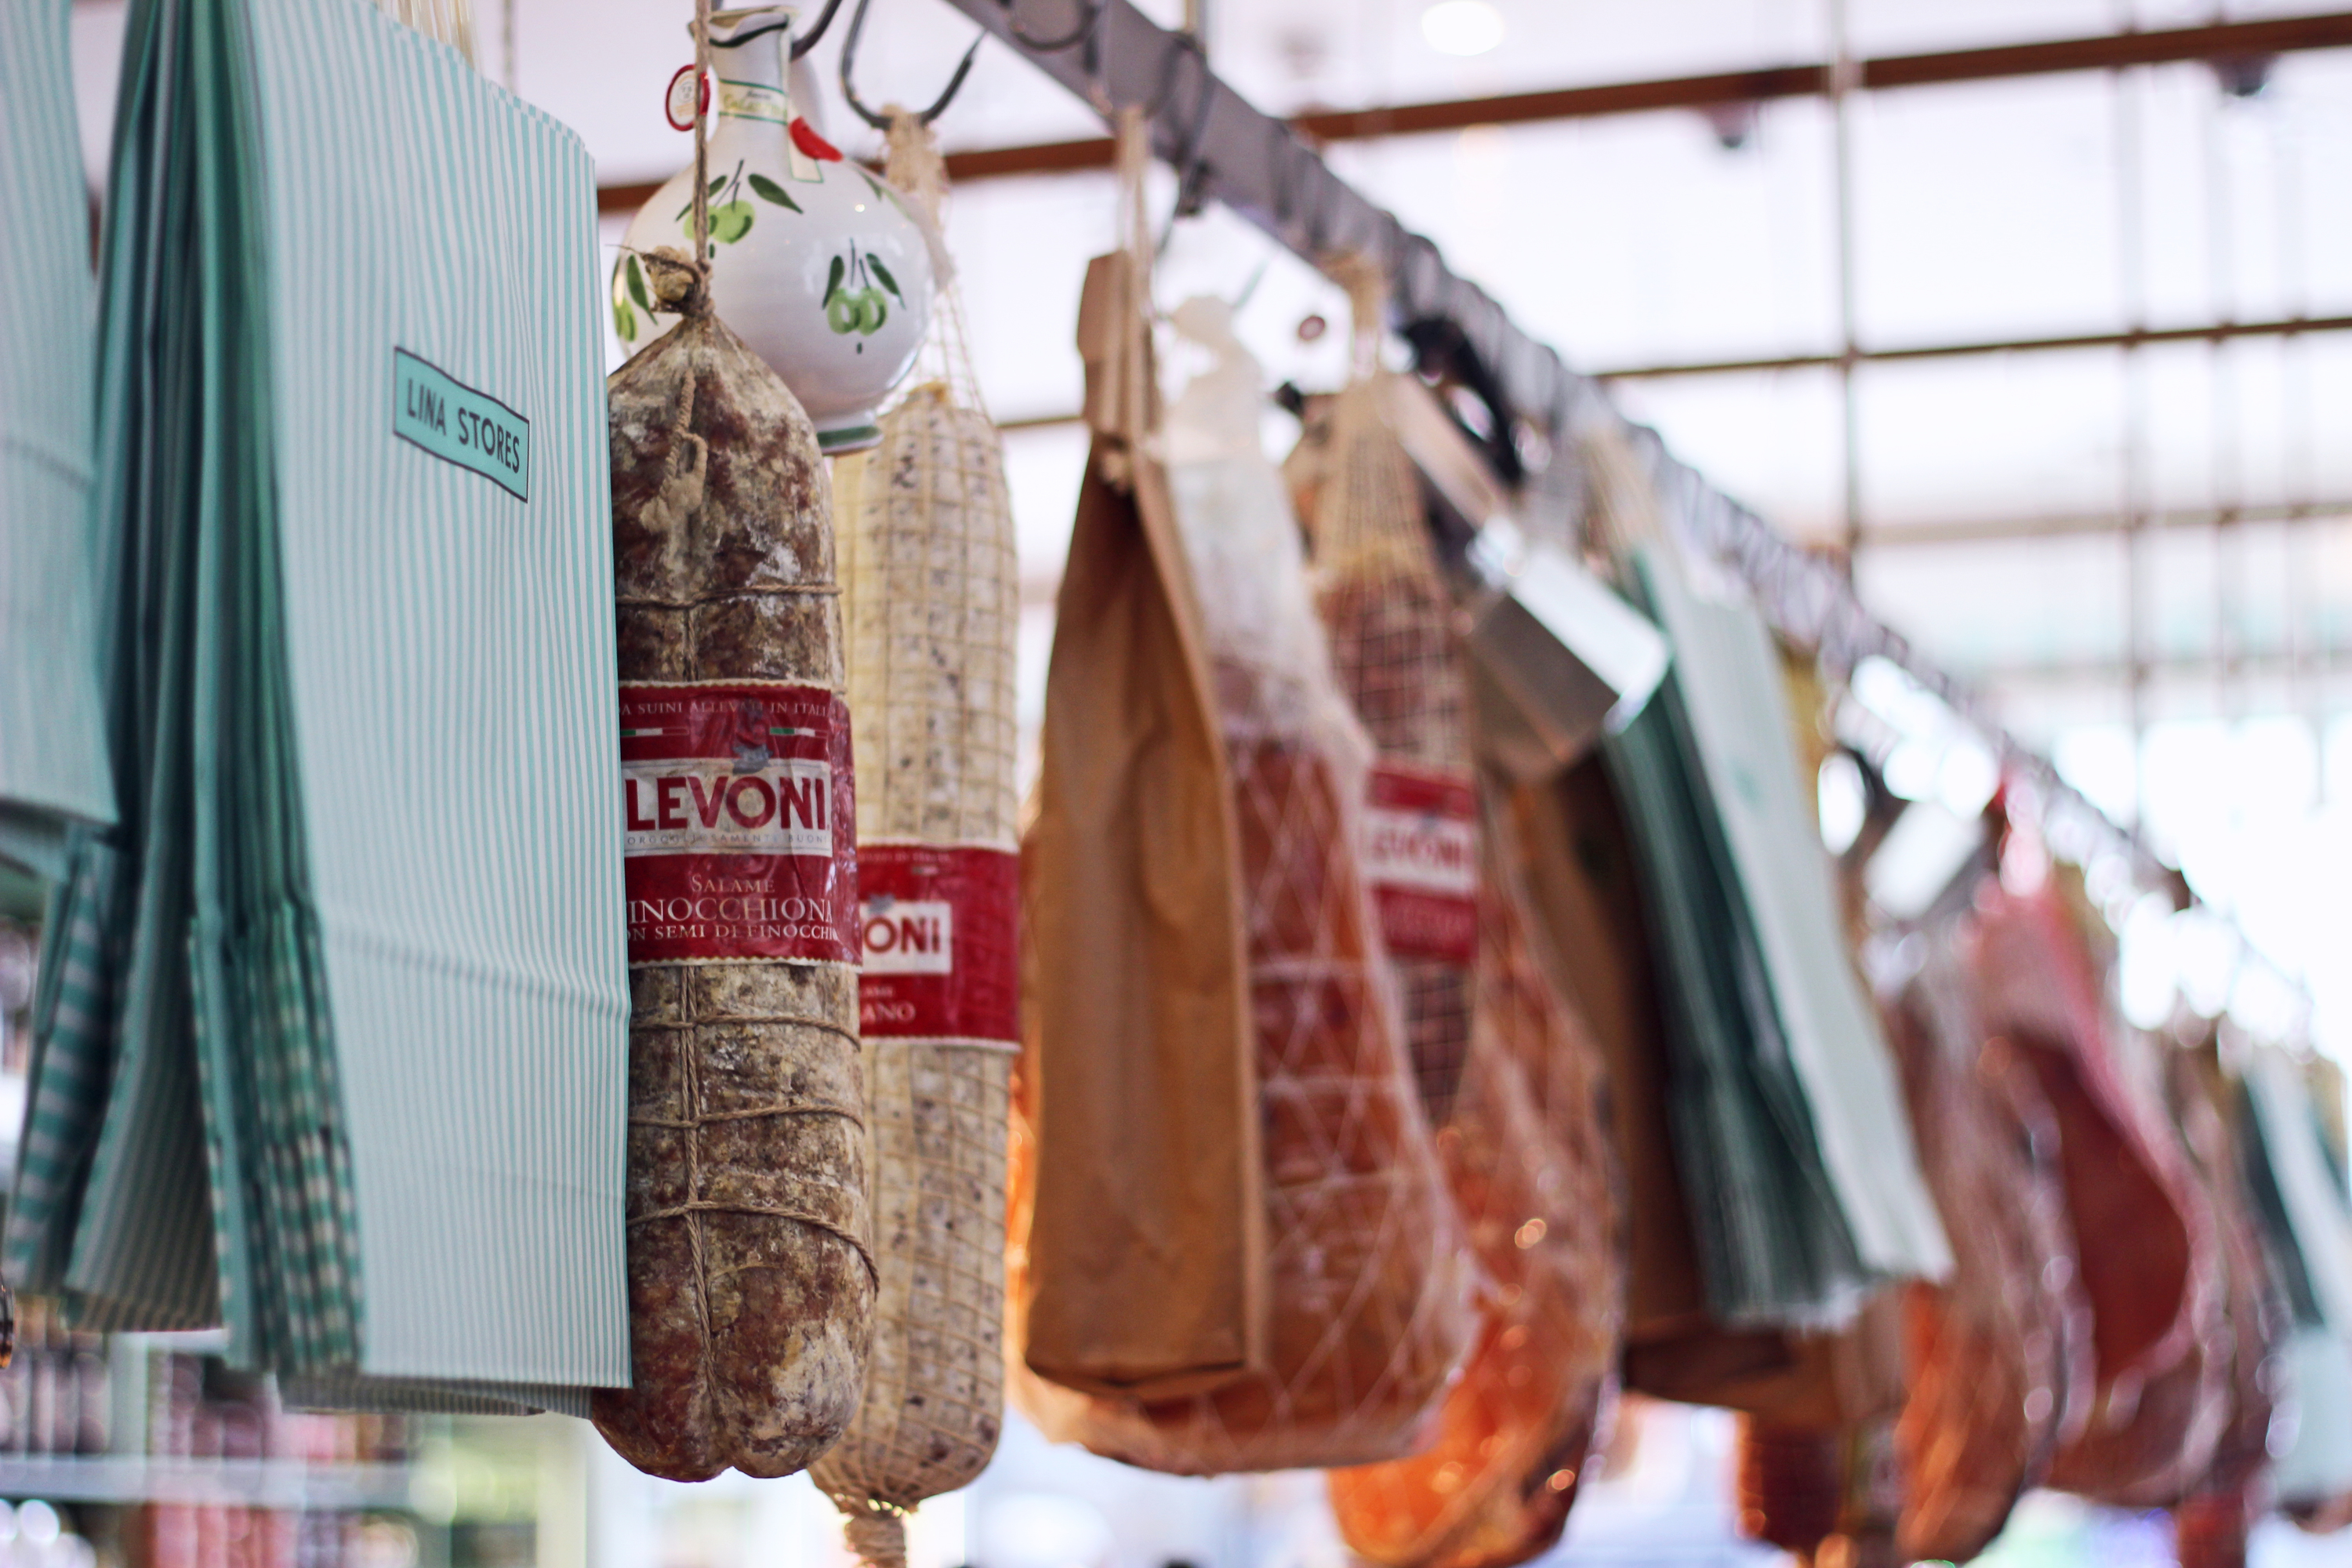 London's top ten spots for Italian charcuterie